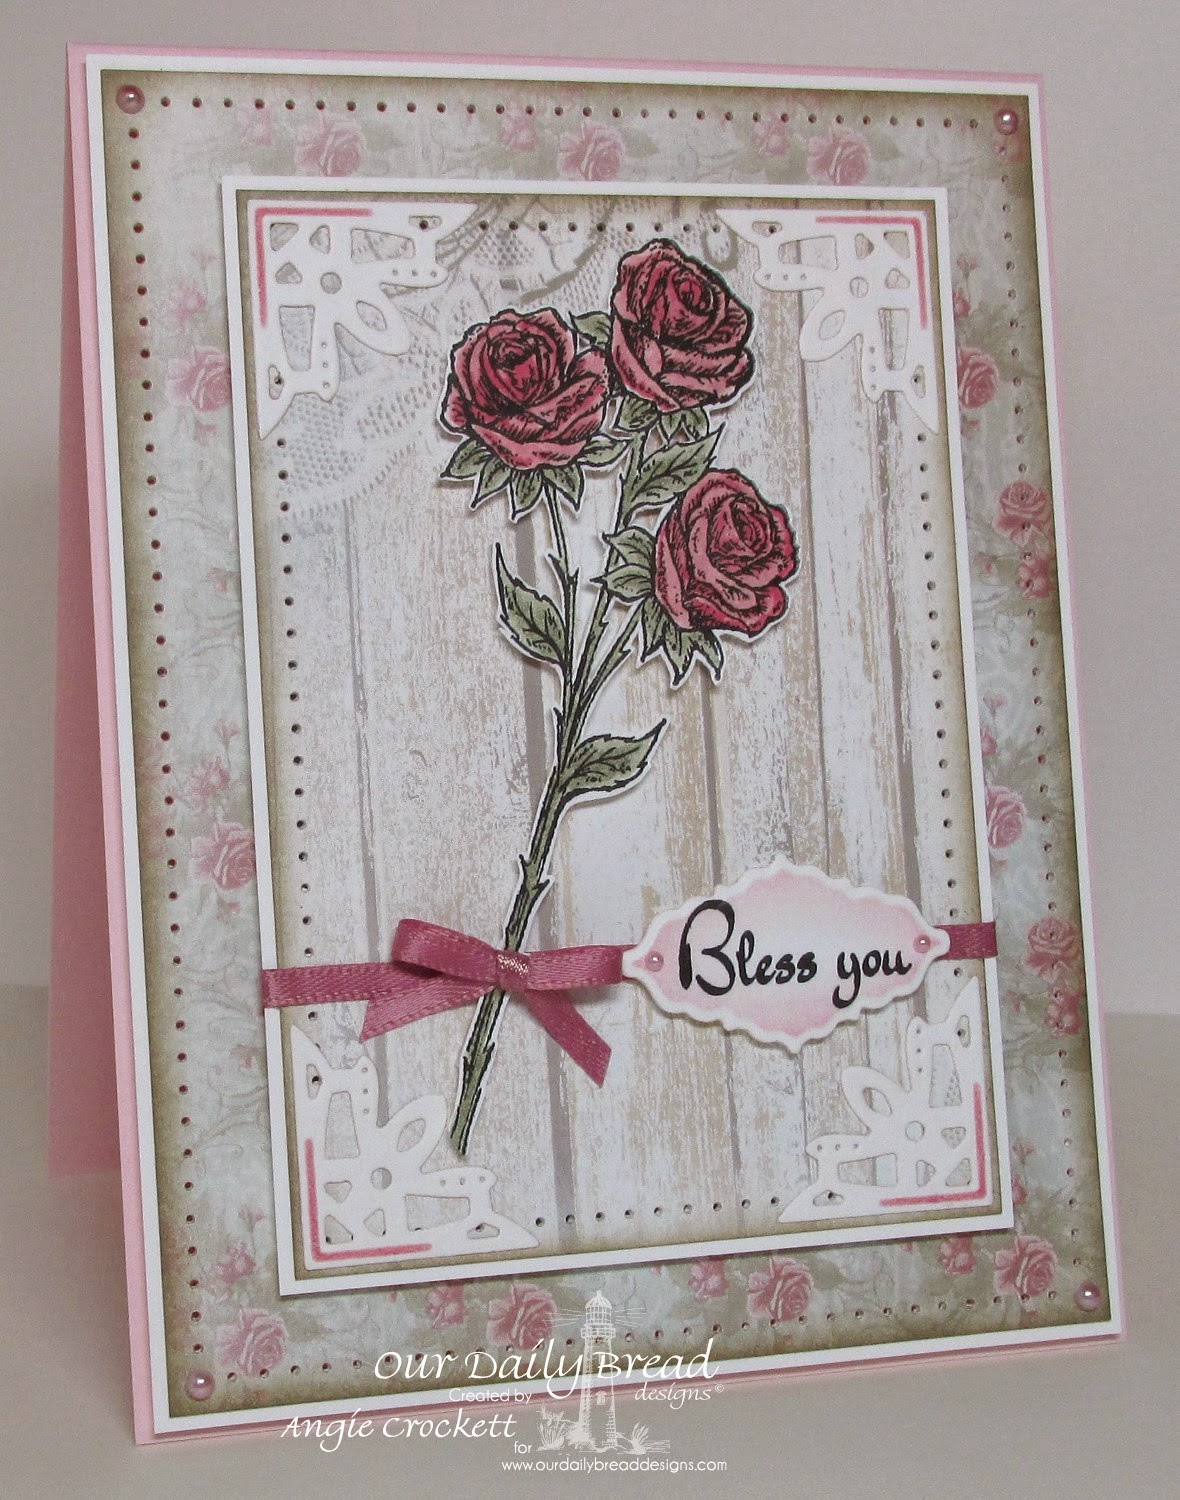 ODBD Rose, ODBD Life is a Gift, ODBD Shabby Rose Paper Collection, ODBD Custom Ornate Borders and Flower Dies, Card Designer Angie Crockett